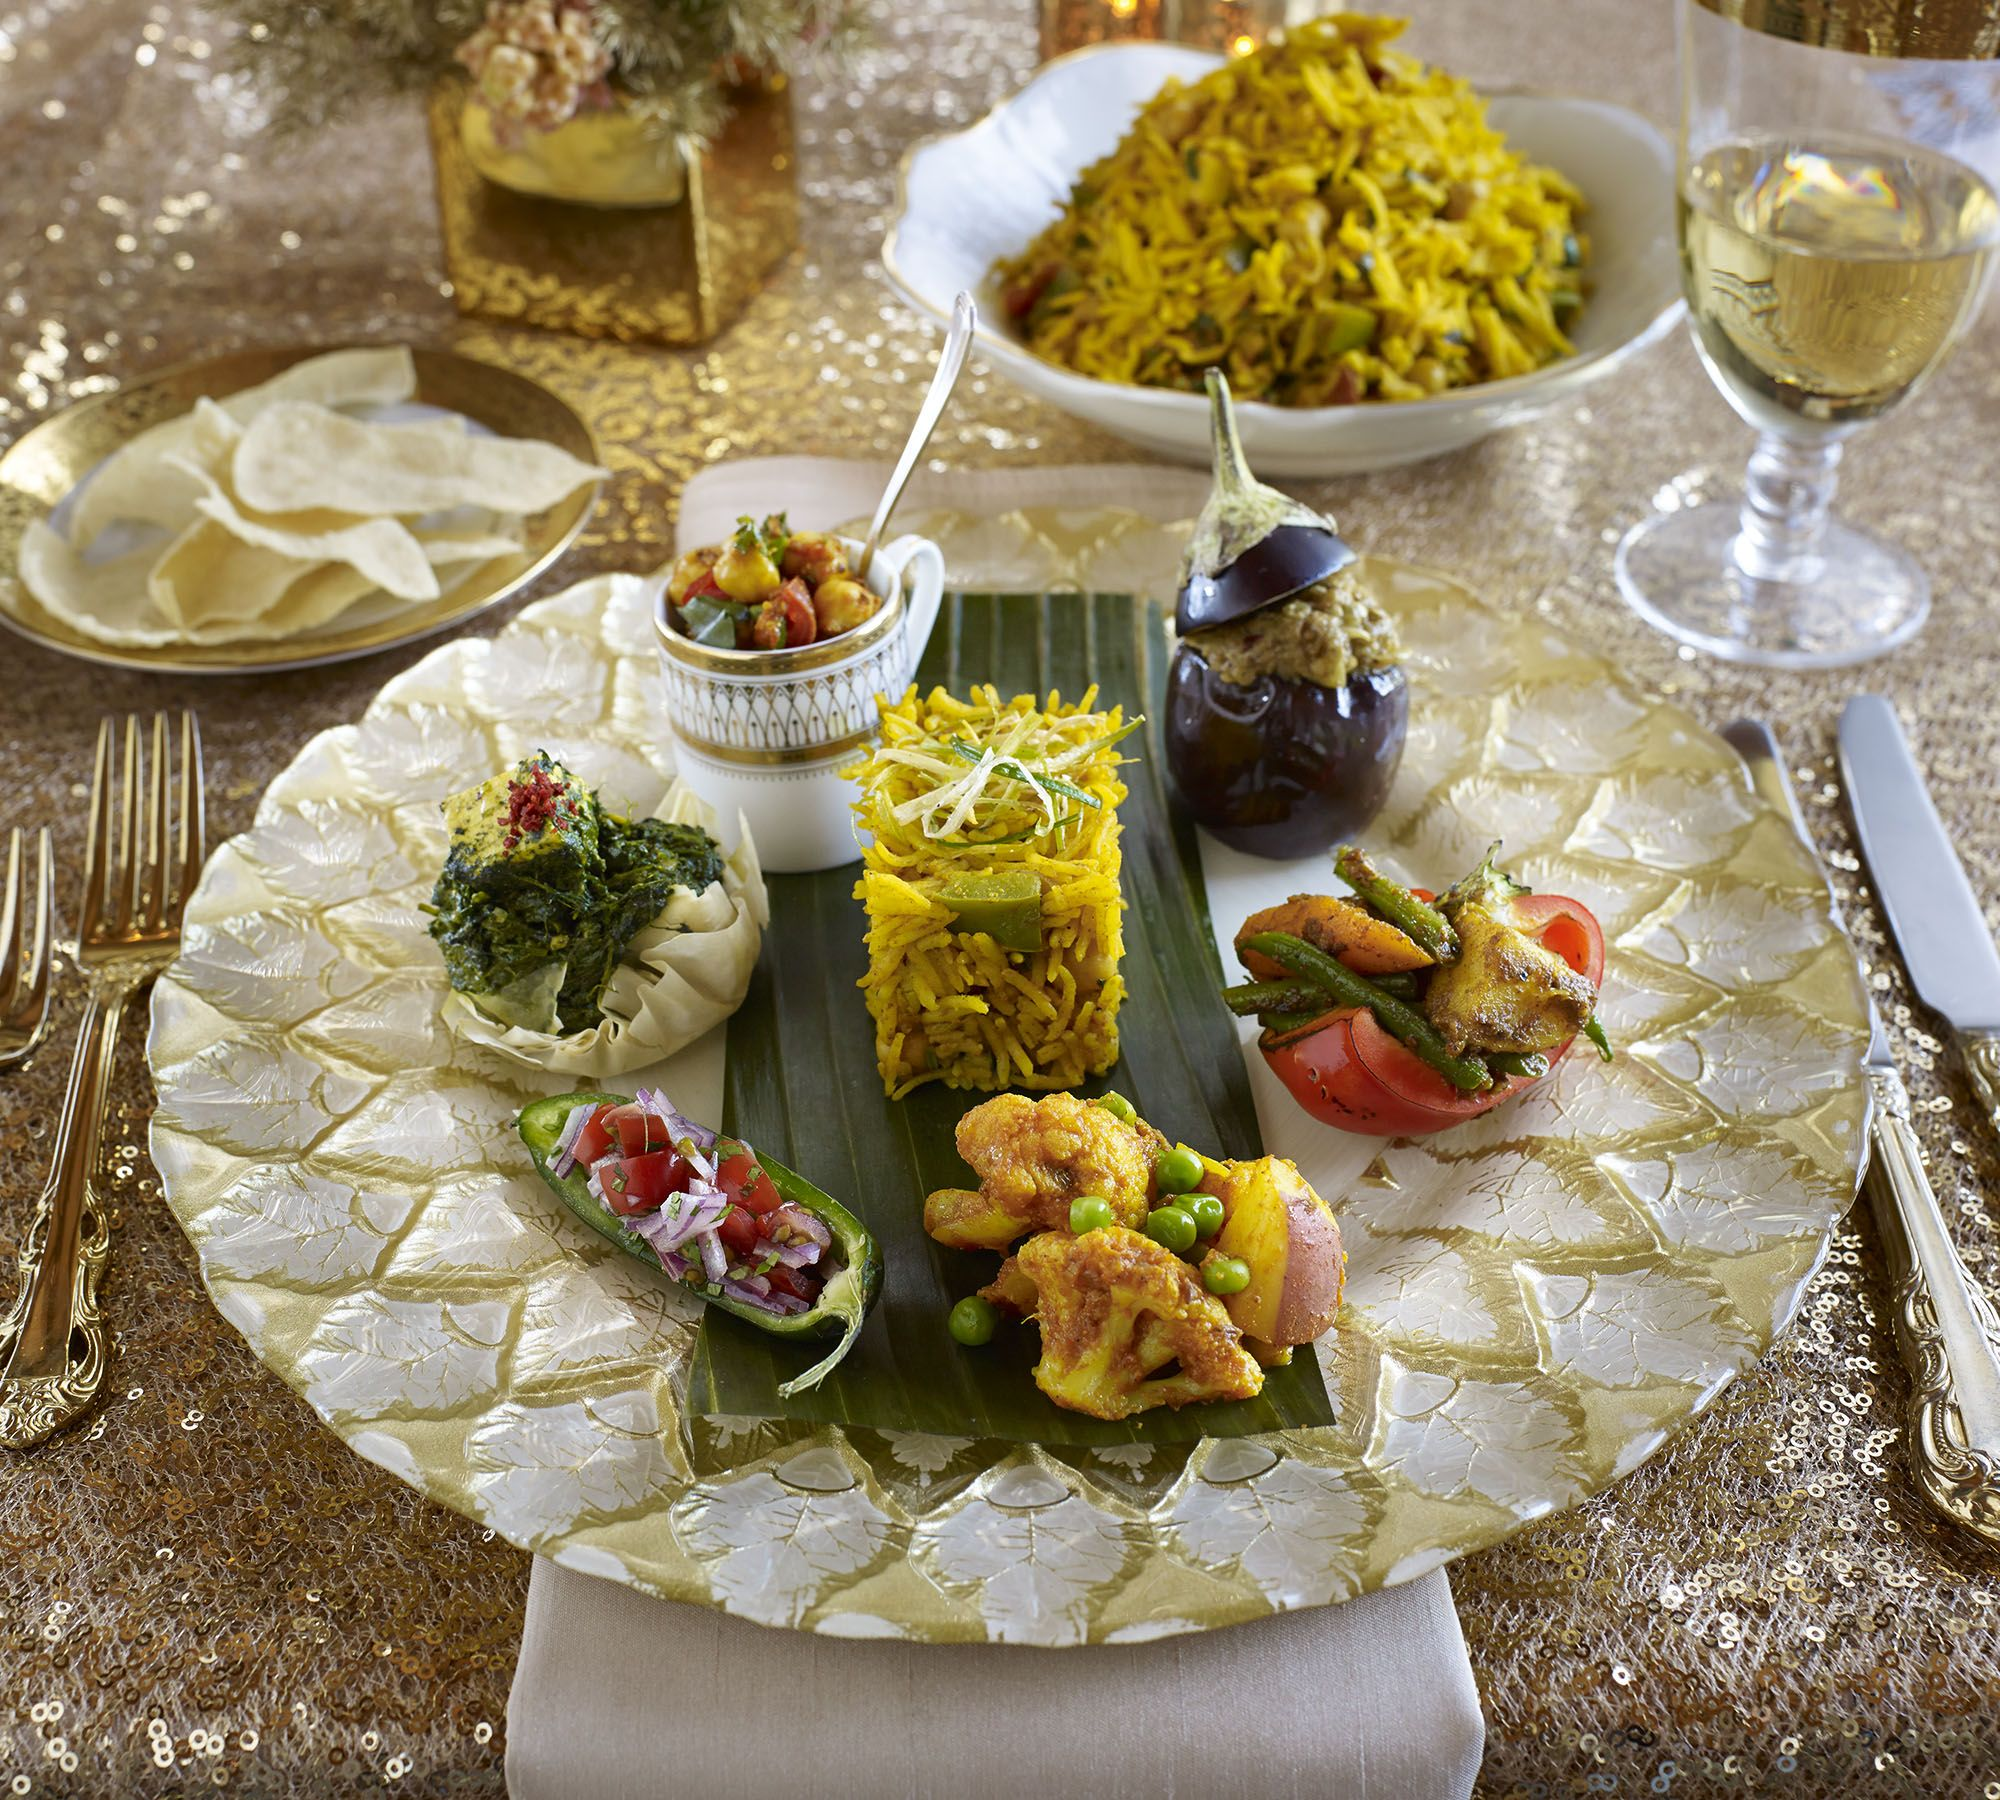 Indian Wedding Reception Food Menu: Thali Sampler, Modern Style, By Www.entertainingcompany